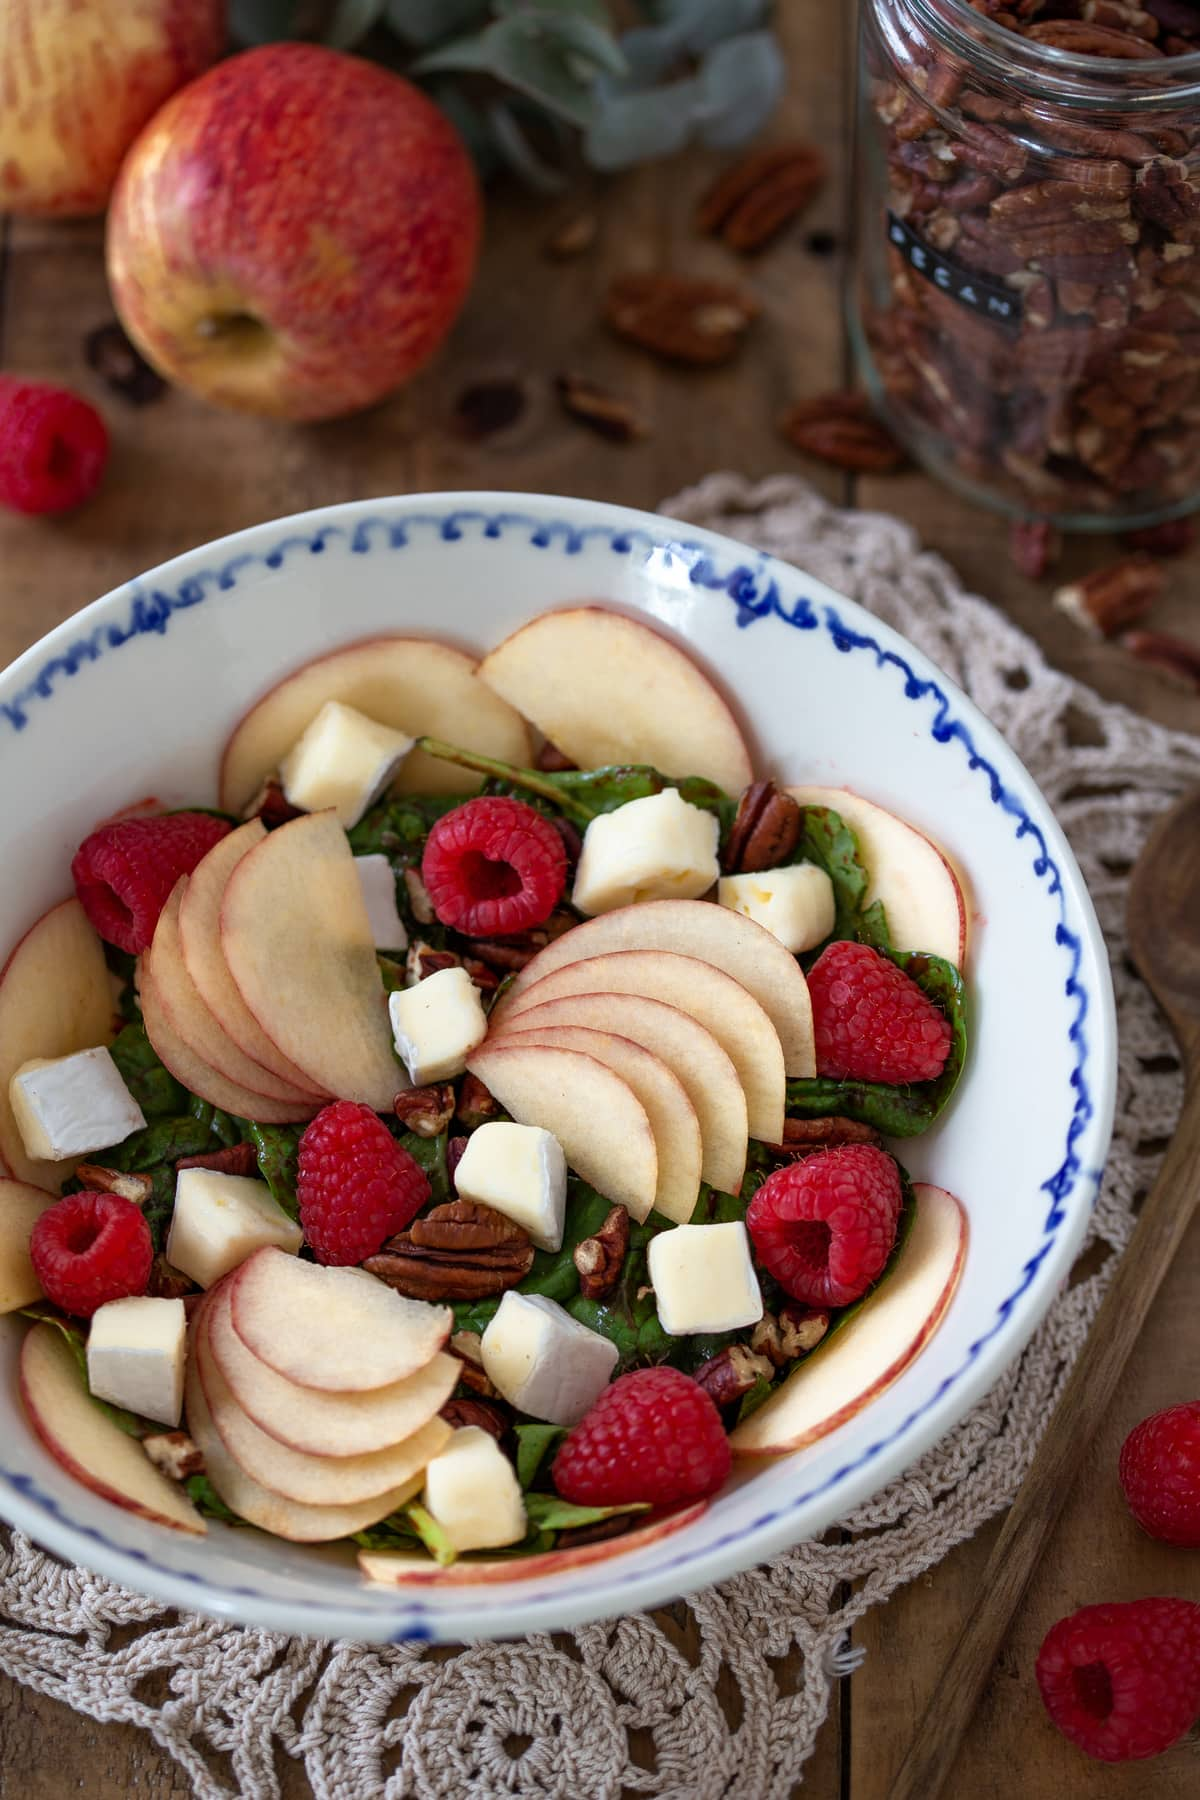 Apple brie salad with raspberries and pecans.